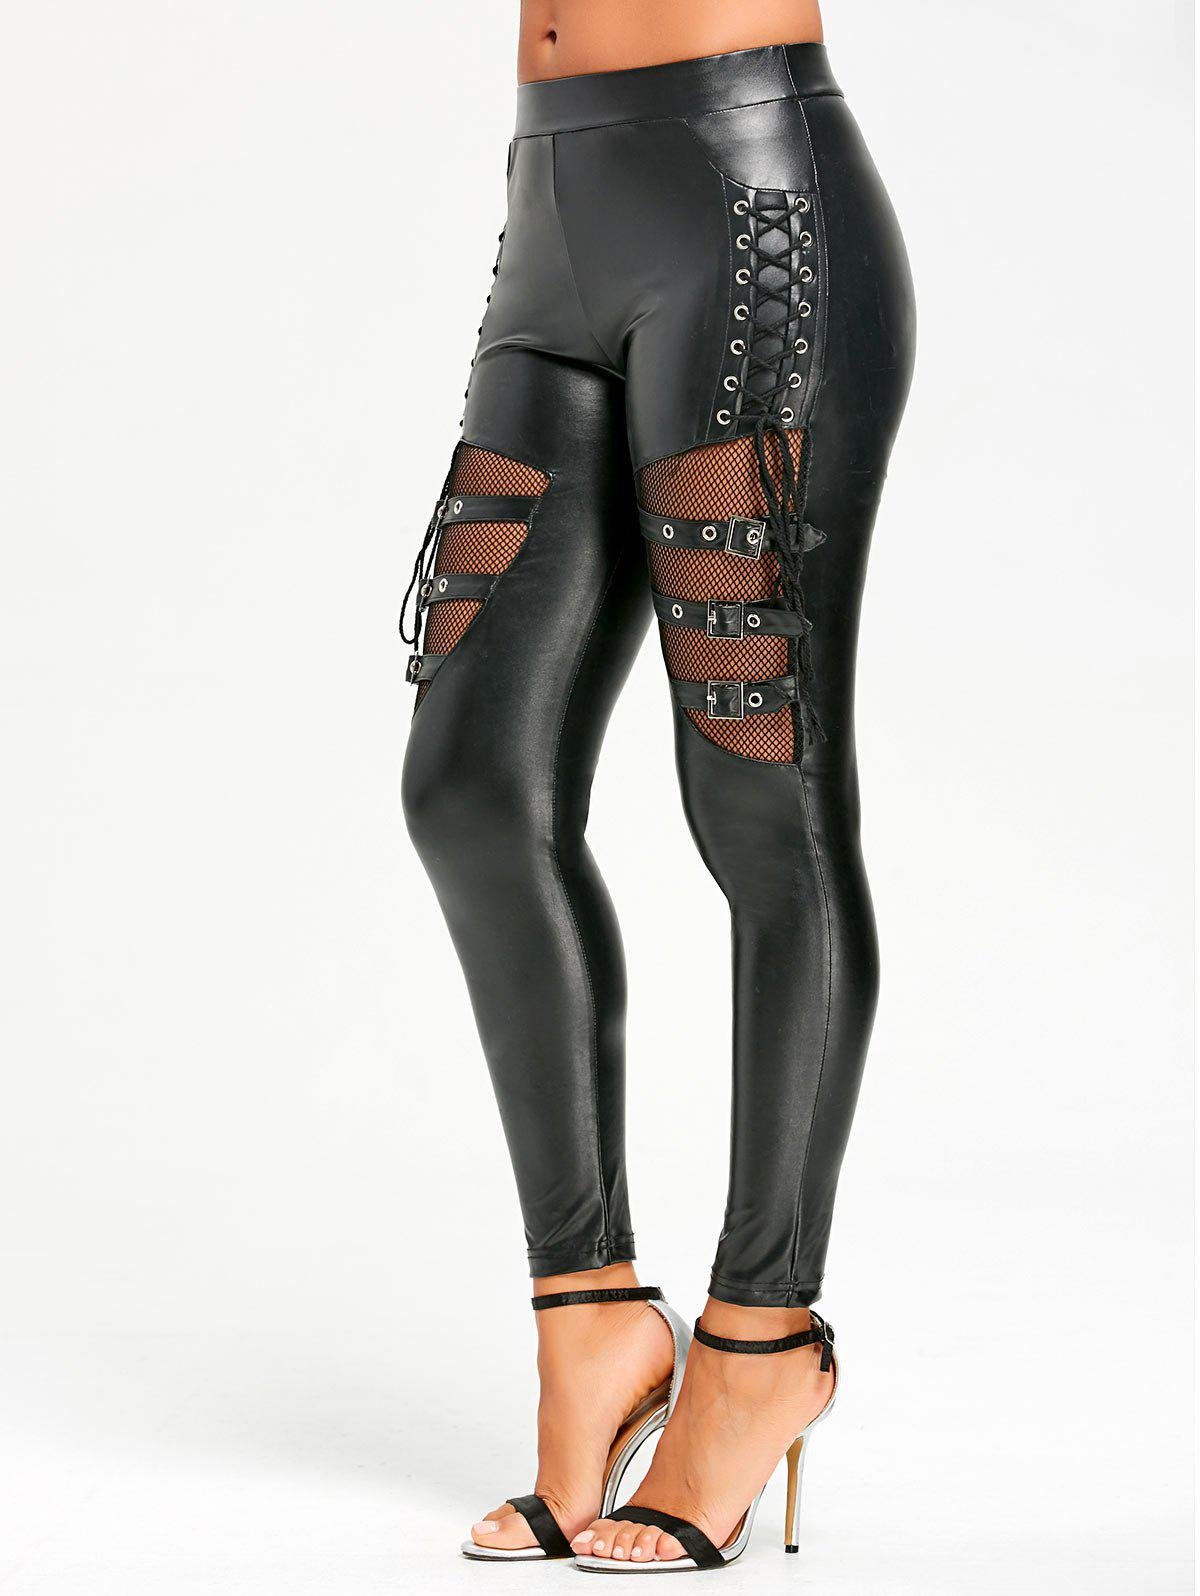 Unique Lace Up Fishnet Insert PU Leather Pants